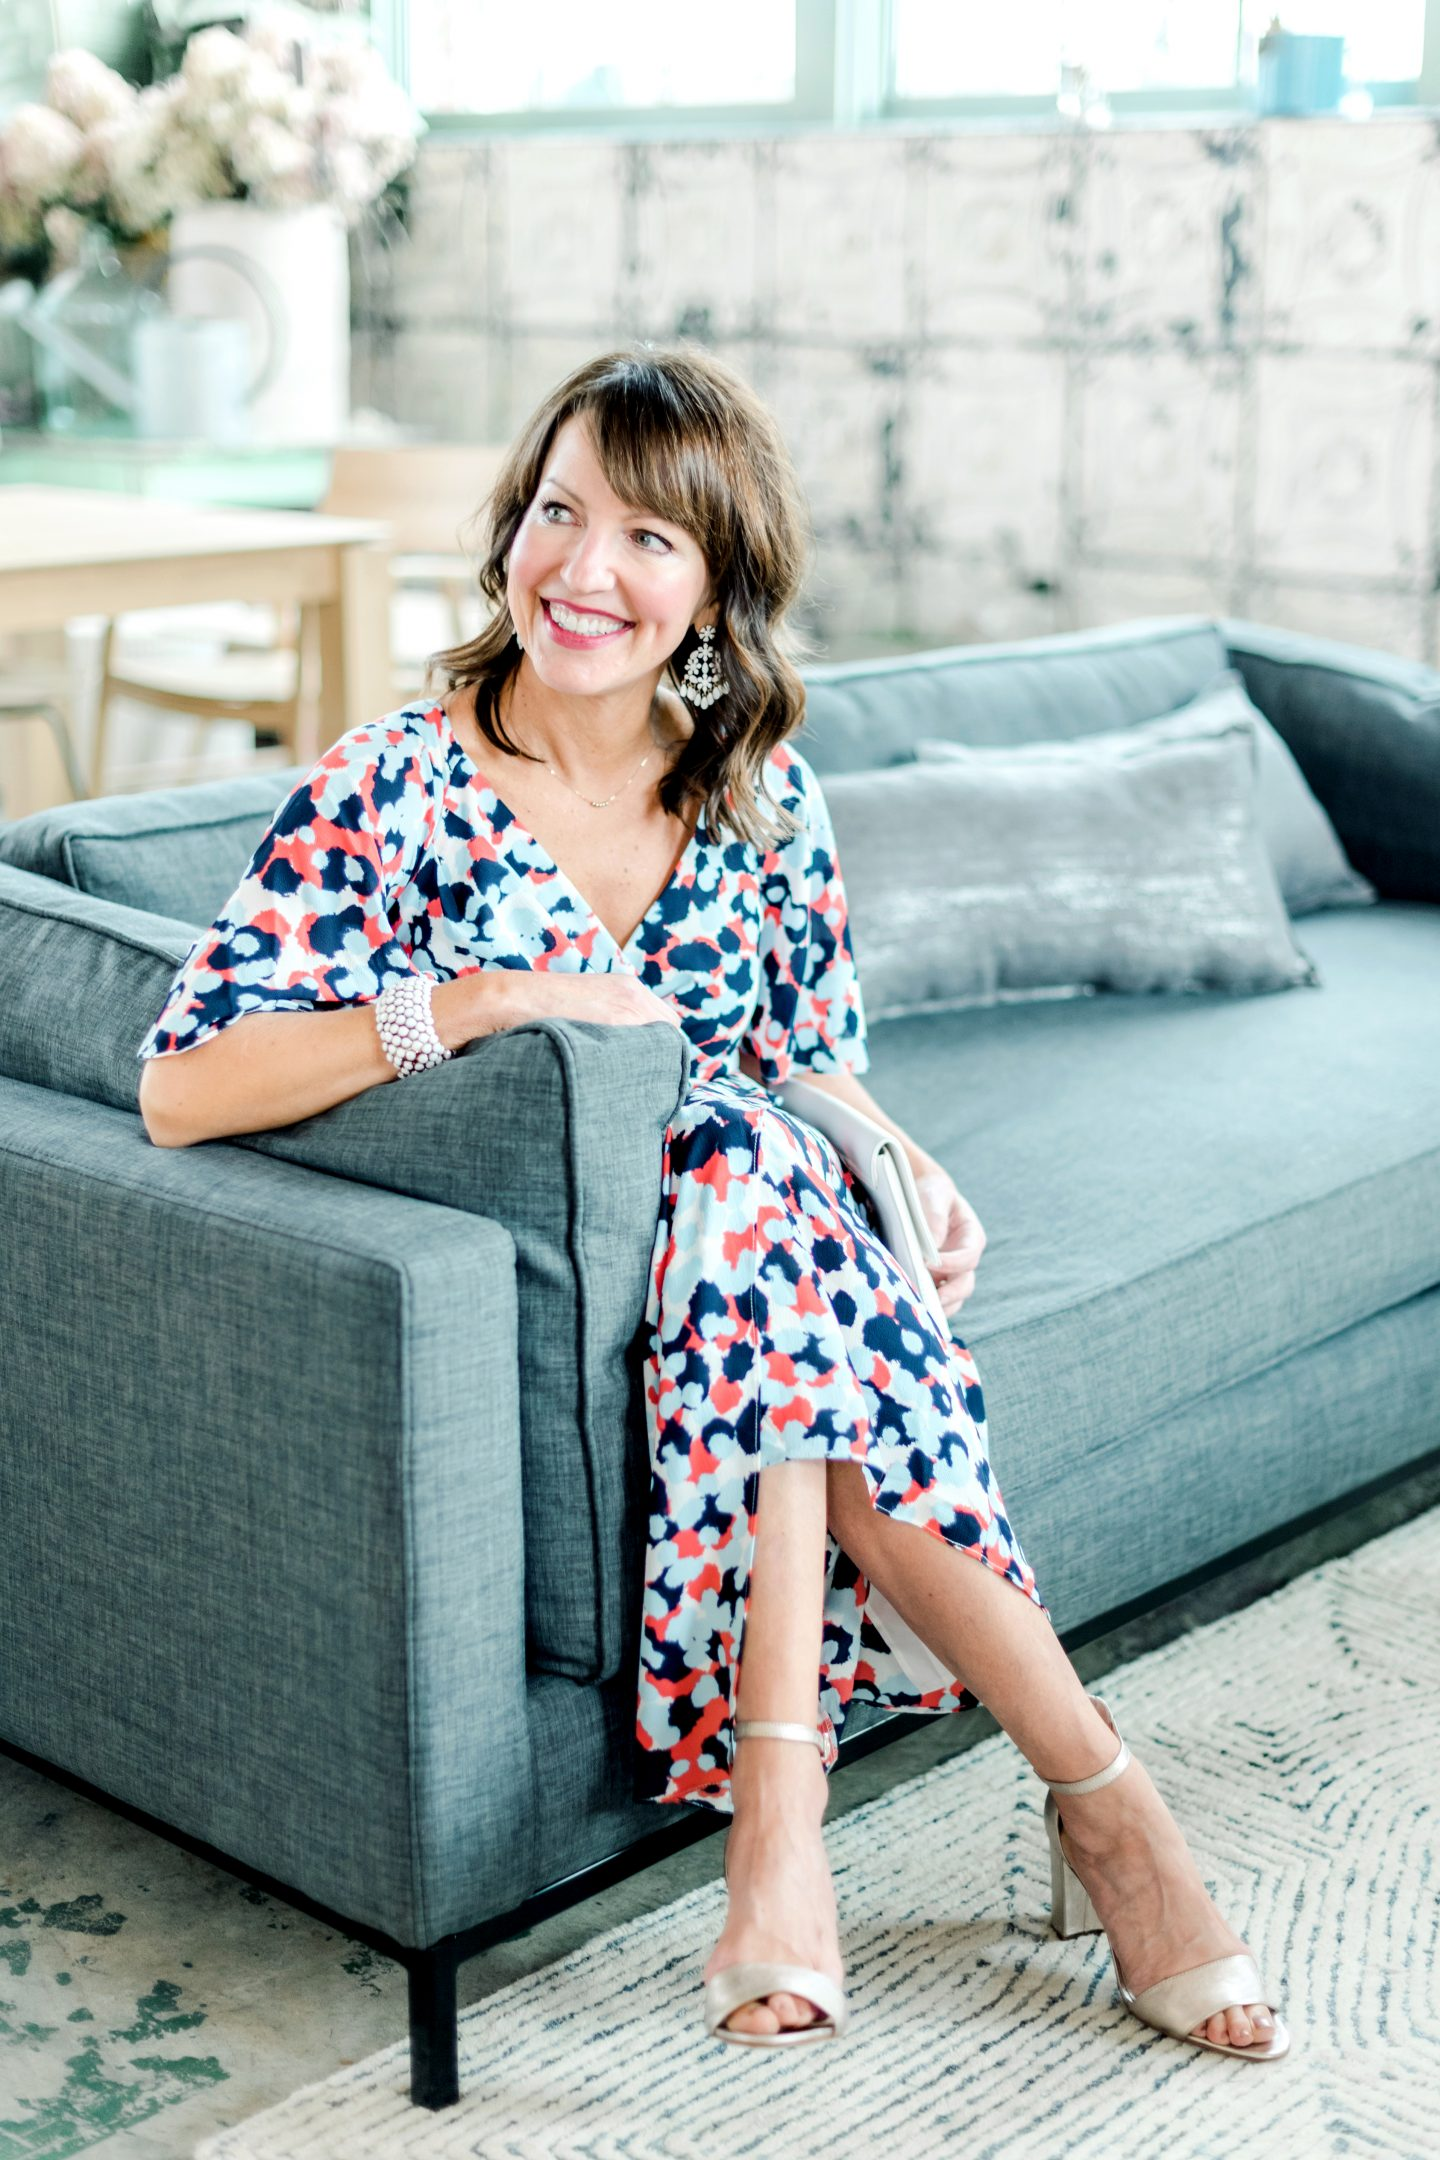 seated on couch in patterned dress